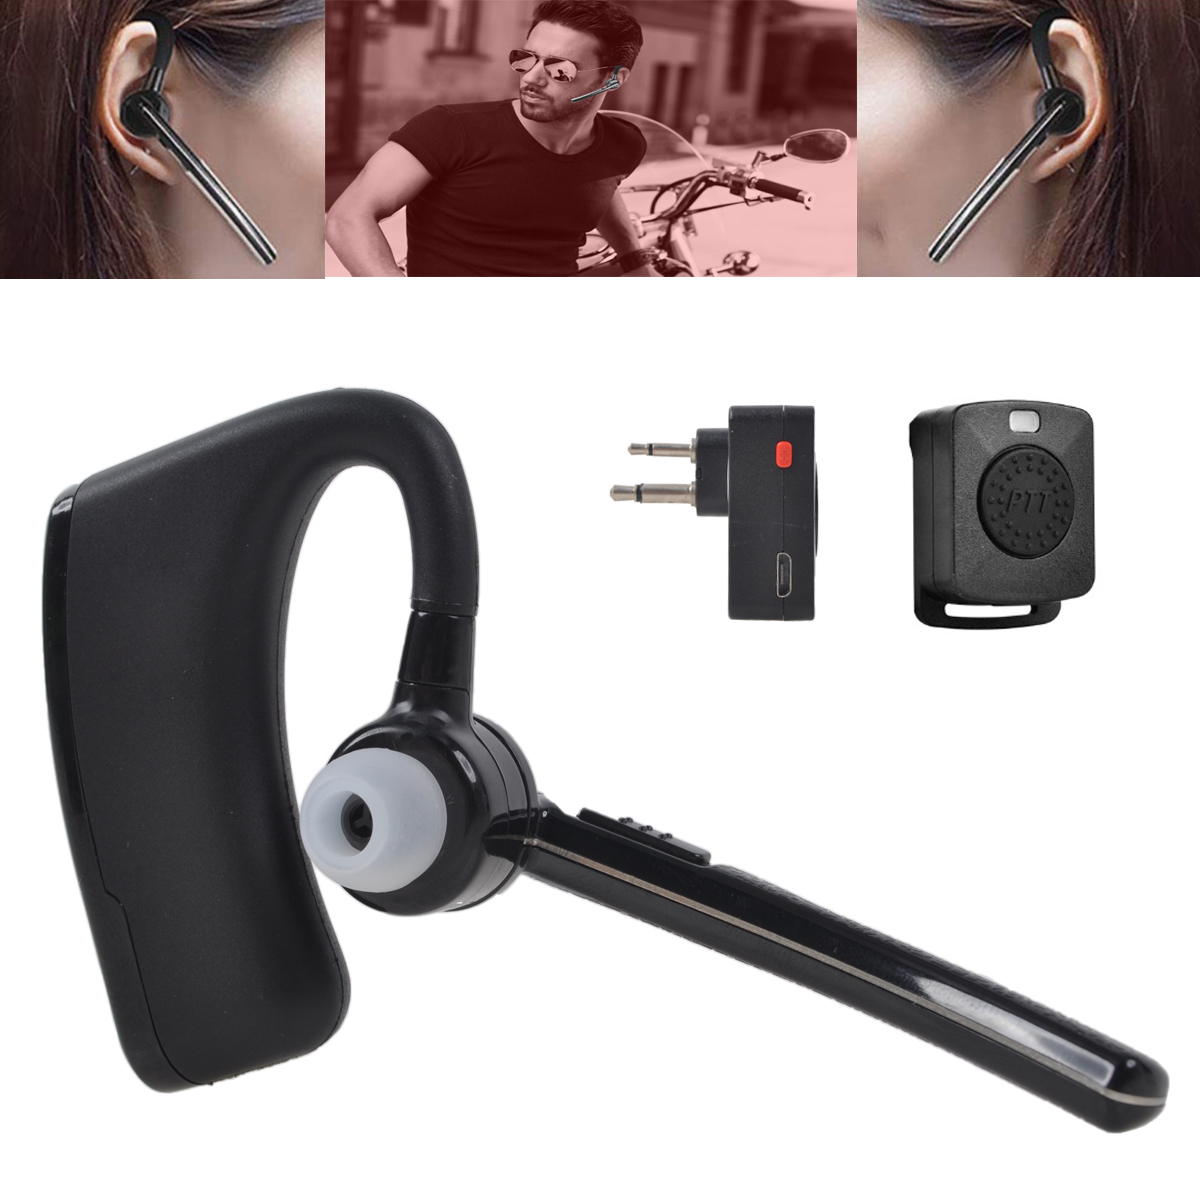 Walkie Talkie Bluetooth Headset Earpiece Ptt Remote For Motorola 2 Way Radio Ebay